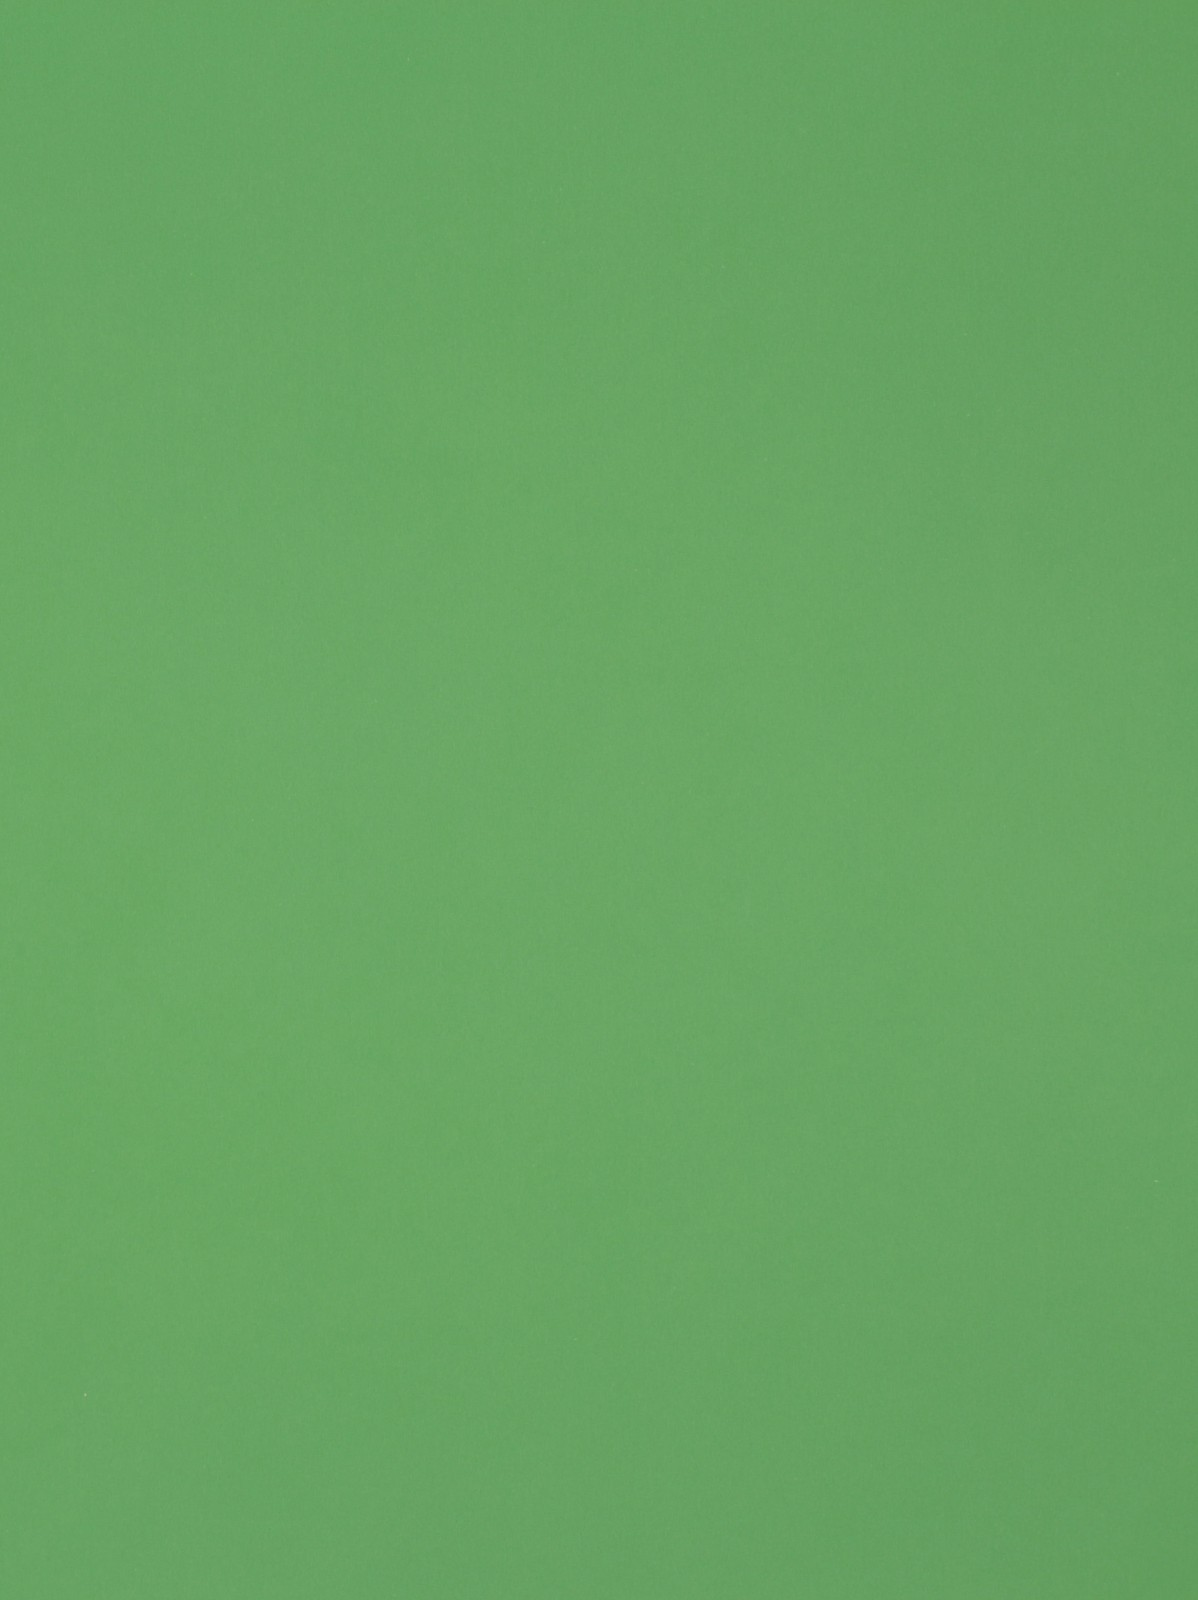 Rasch Textil Non Woven Wallpaper Giggle Kids Wallpaper 137014 Plain Green